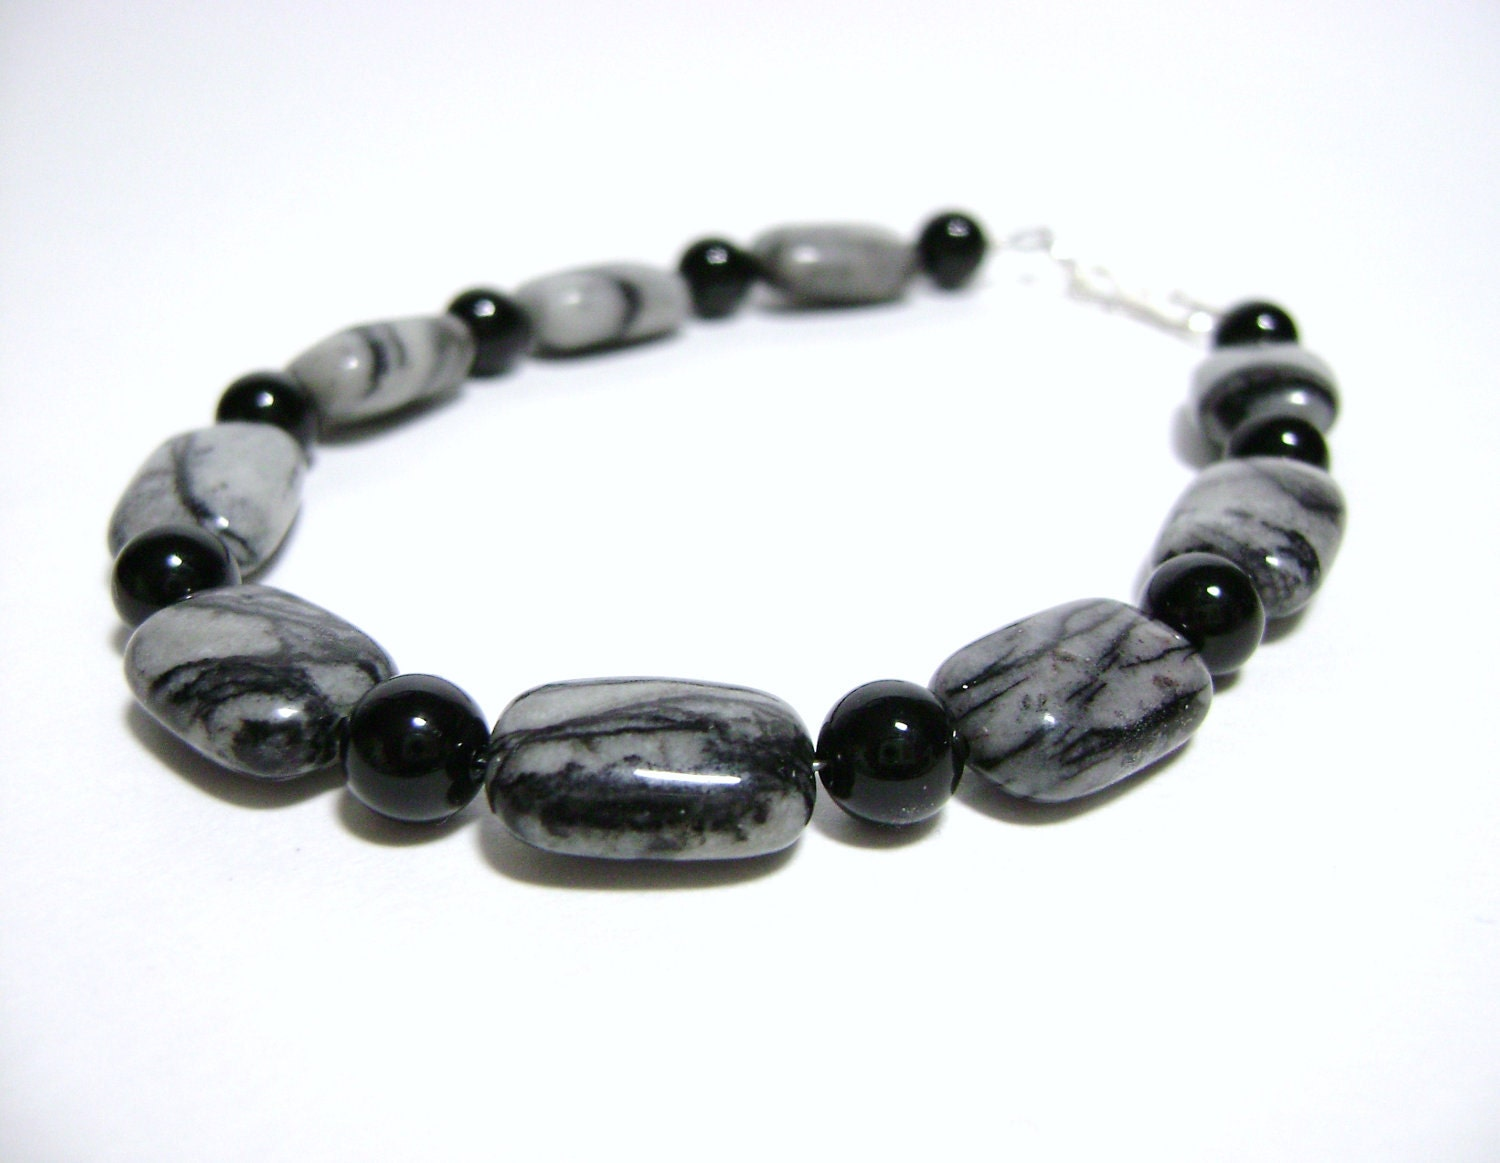 Zebra Jasper and Black Onyx bracelet with Sterling Silver rings and clasp